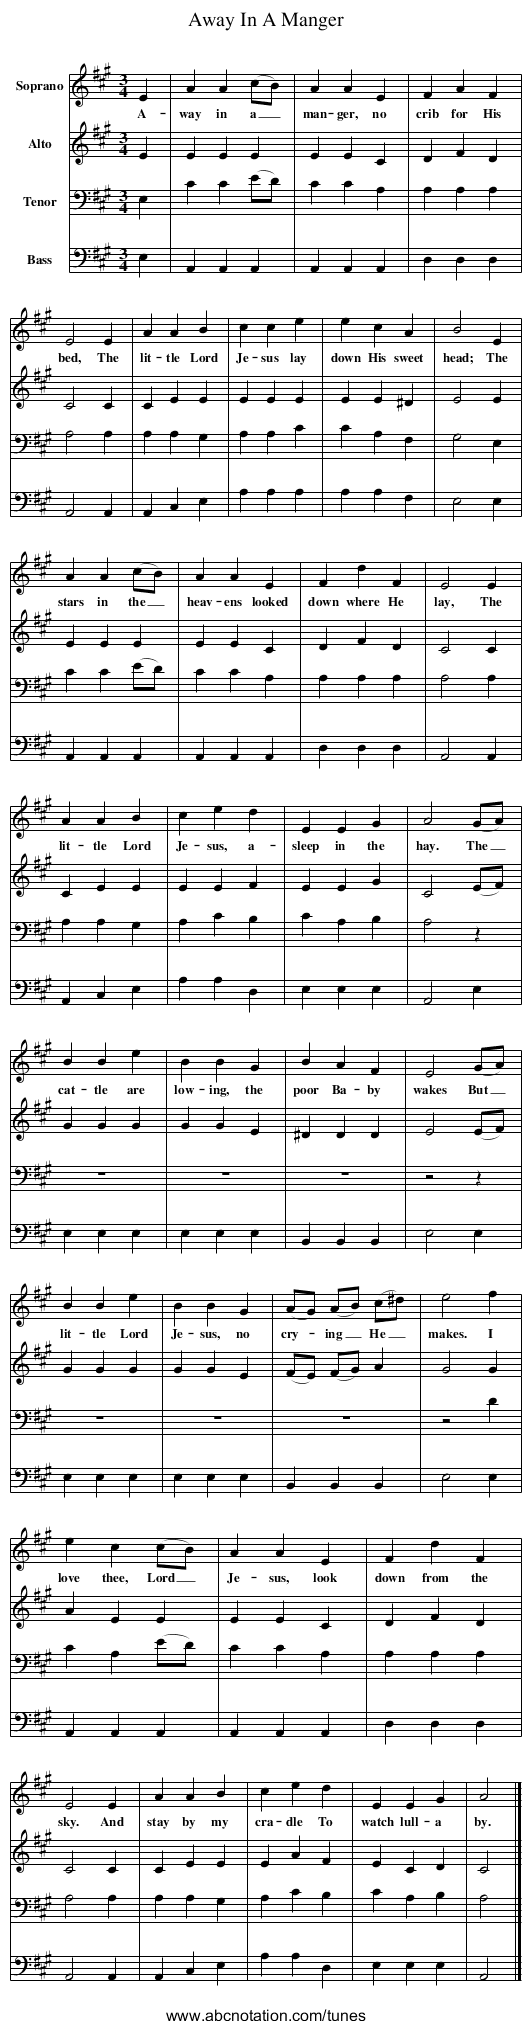 Away In A Manger - staff notation